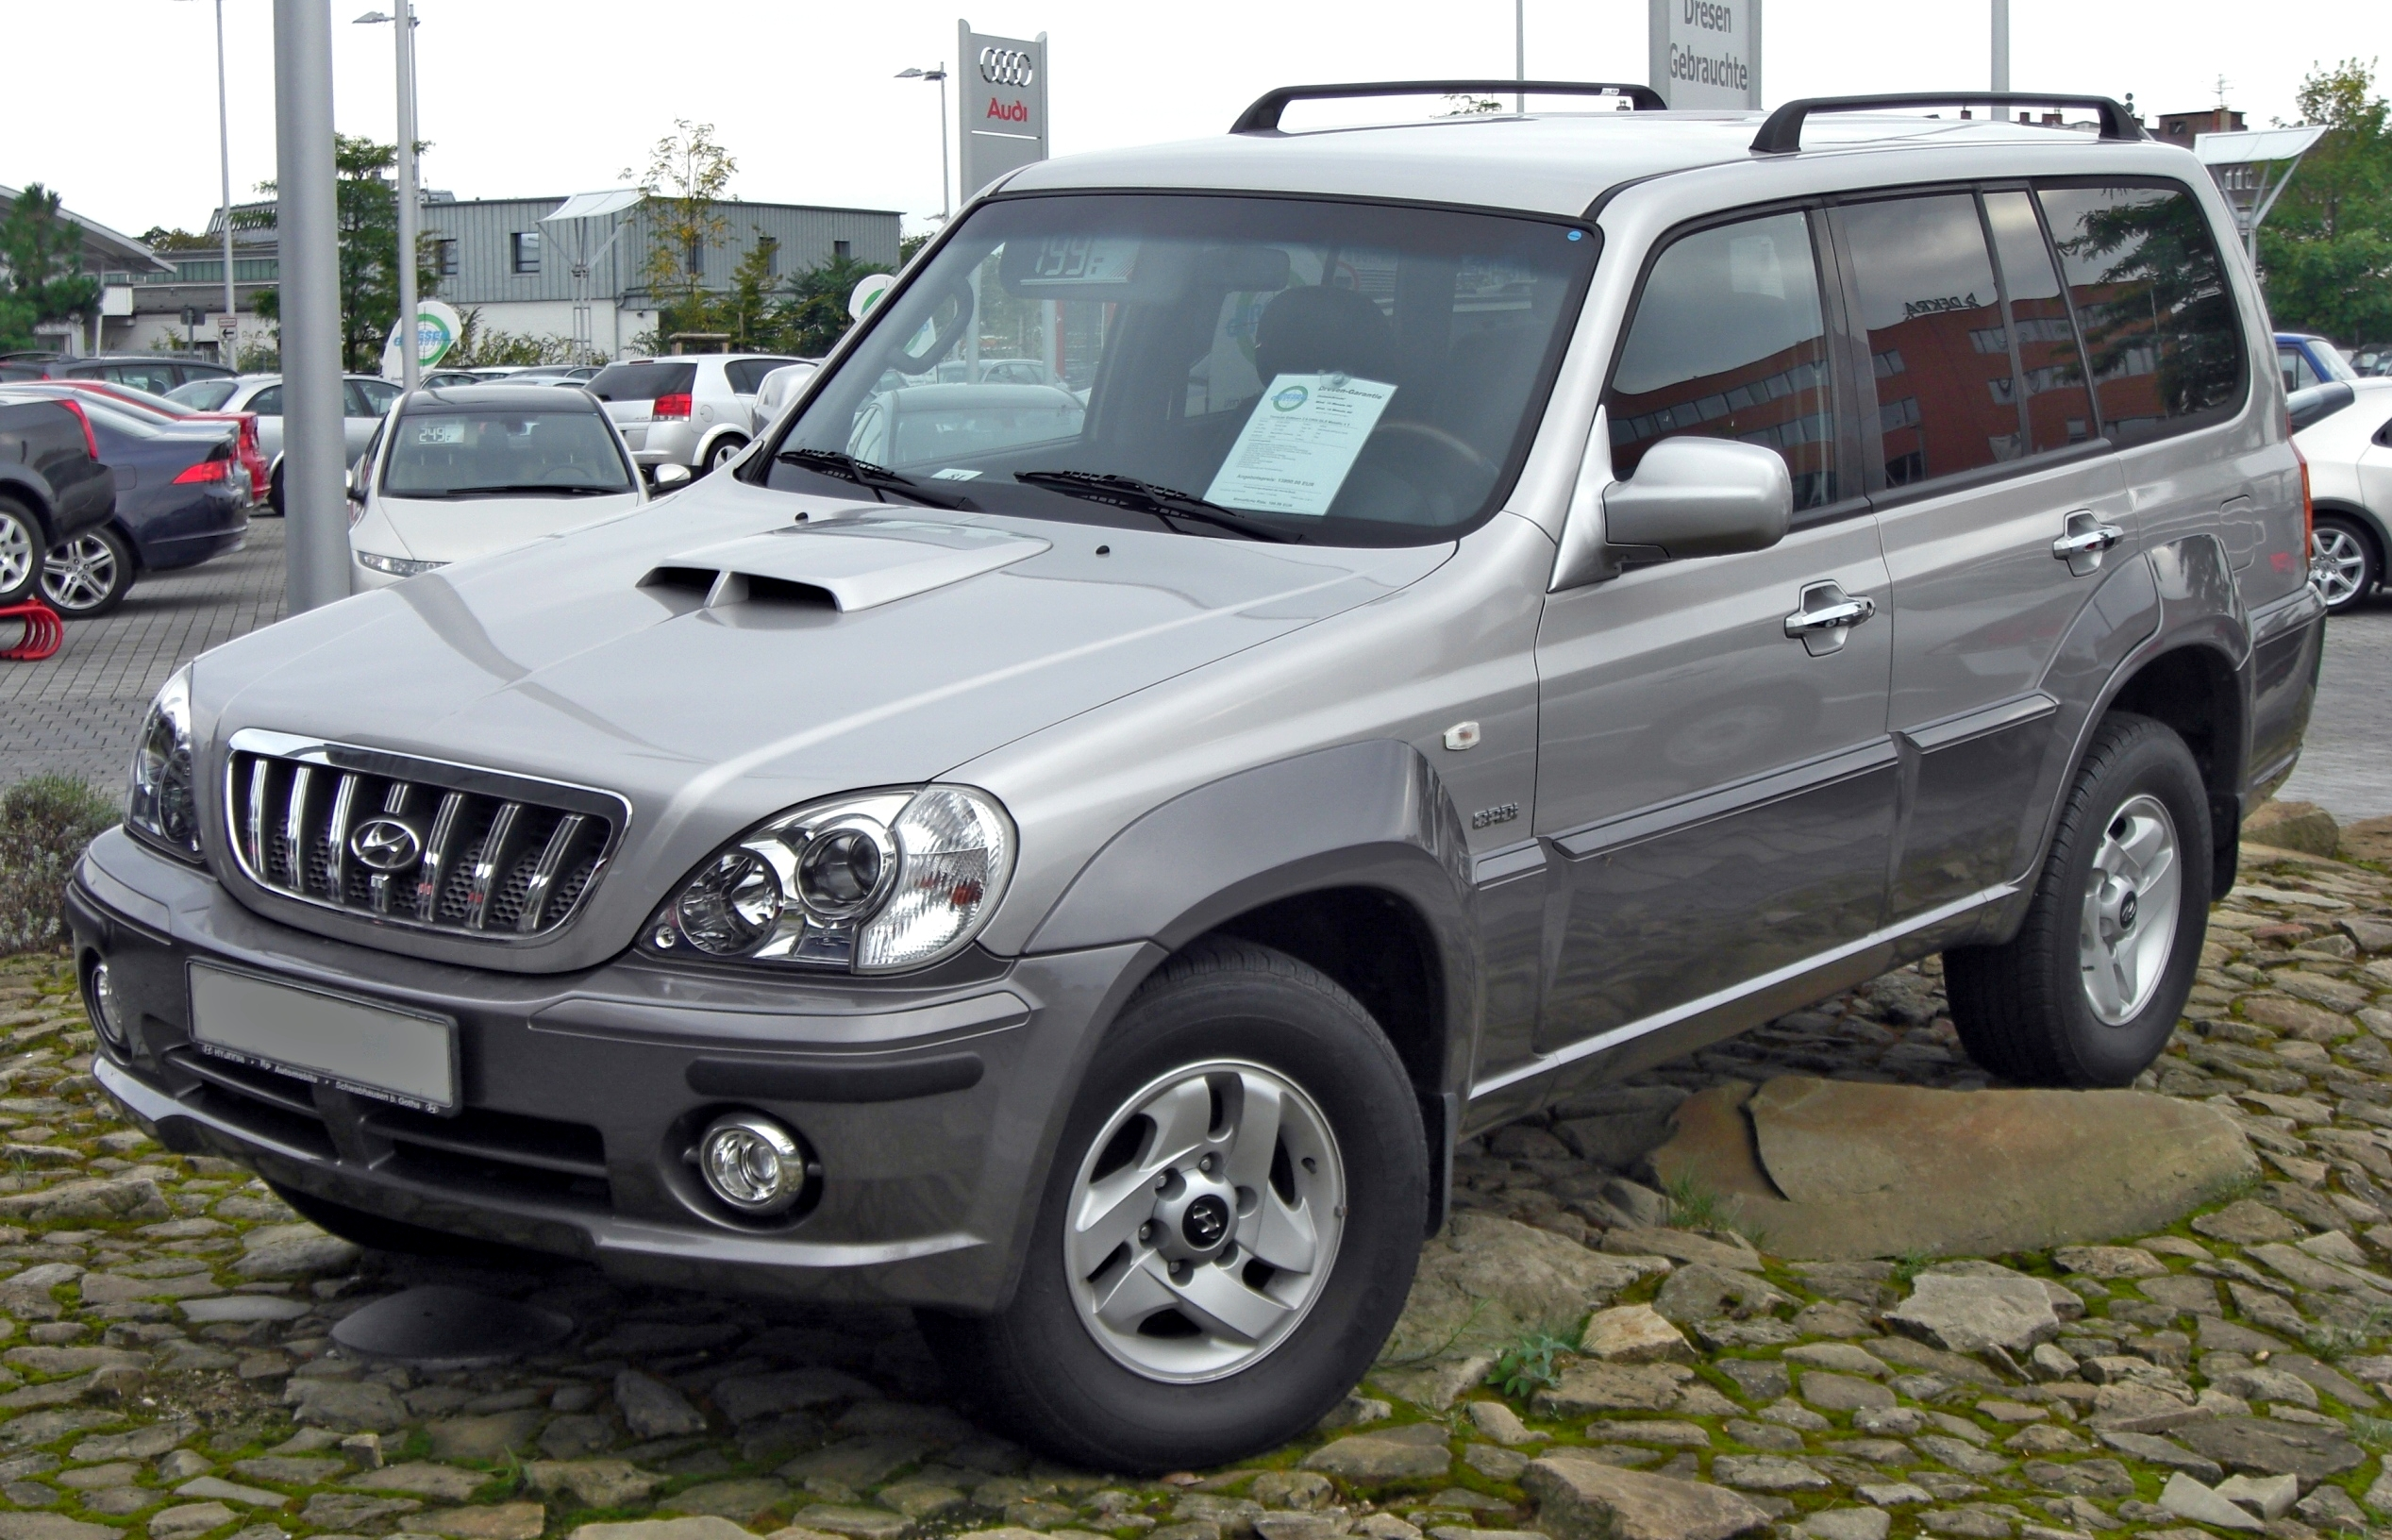 Hyundai Terracan Technical Details History Photos On